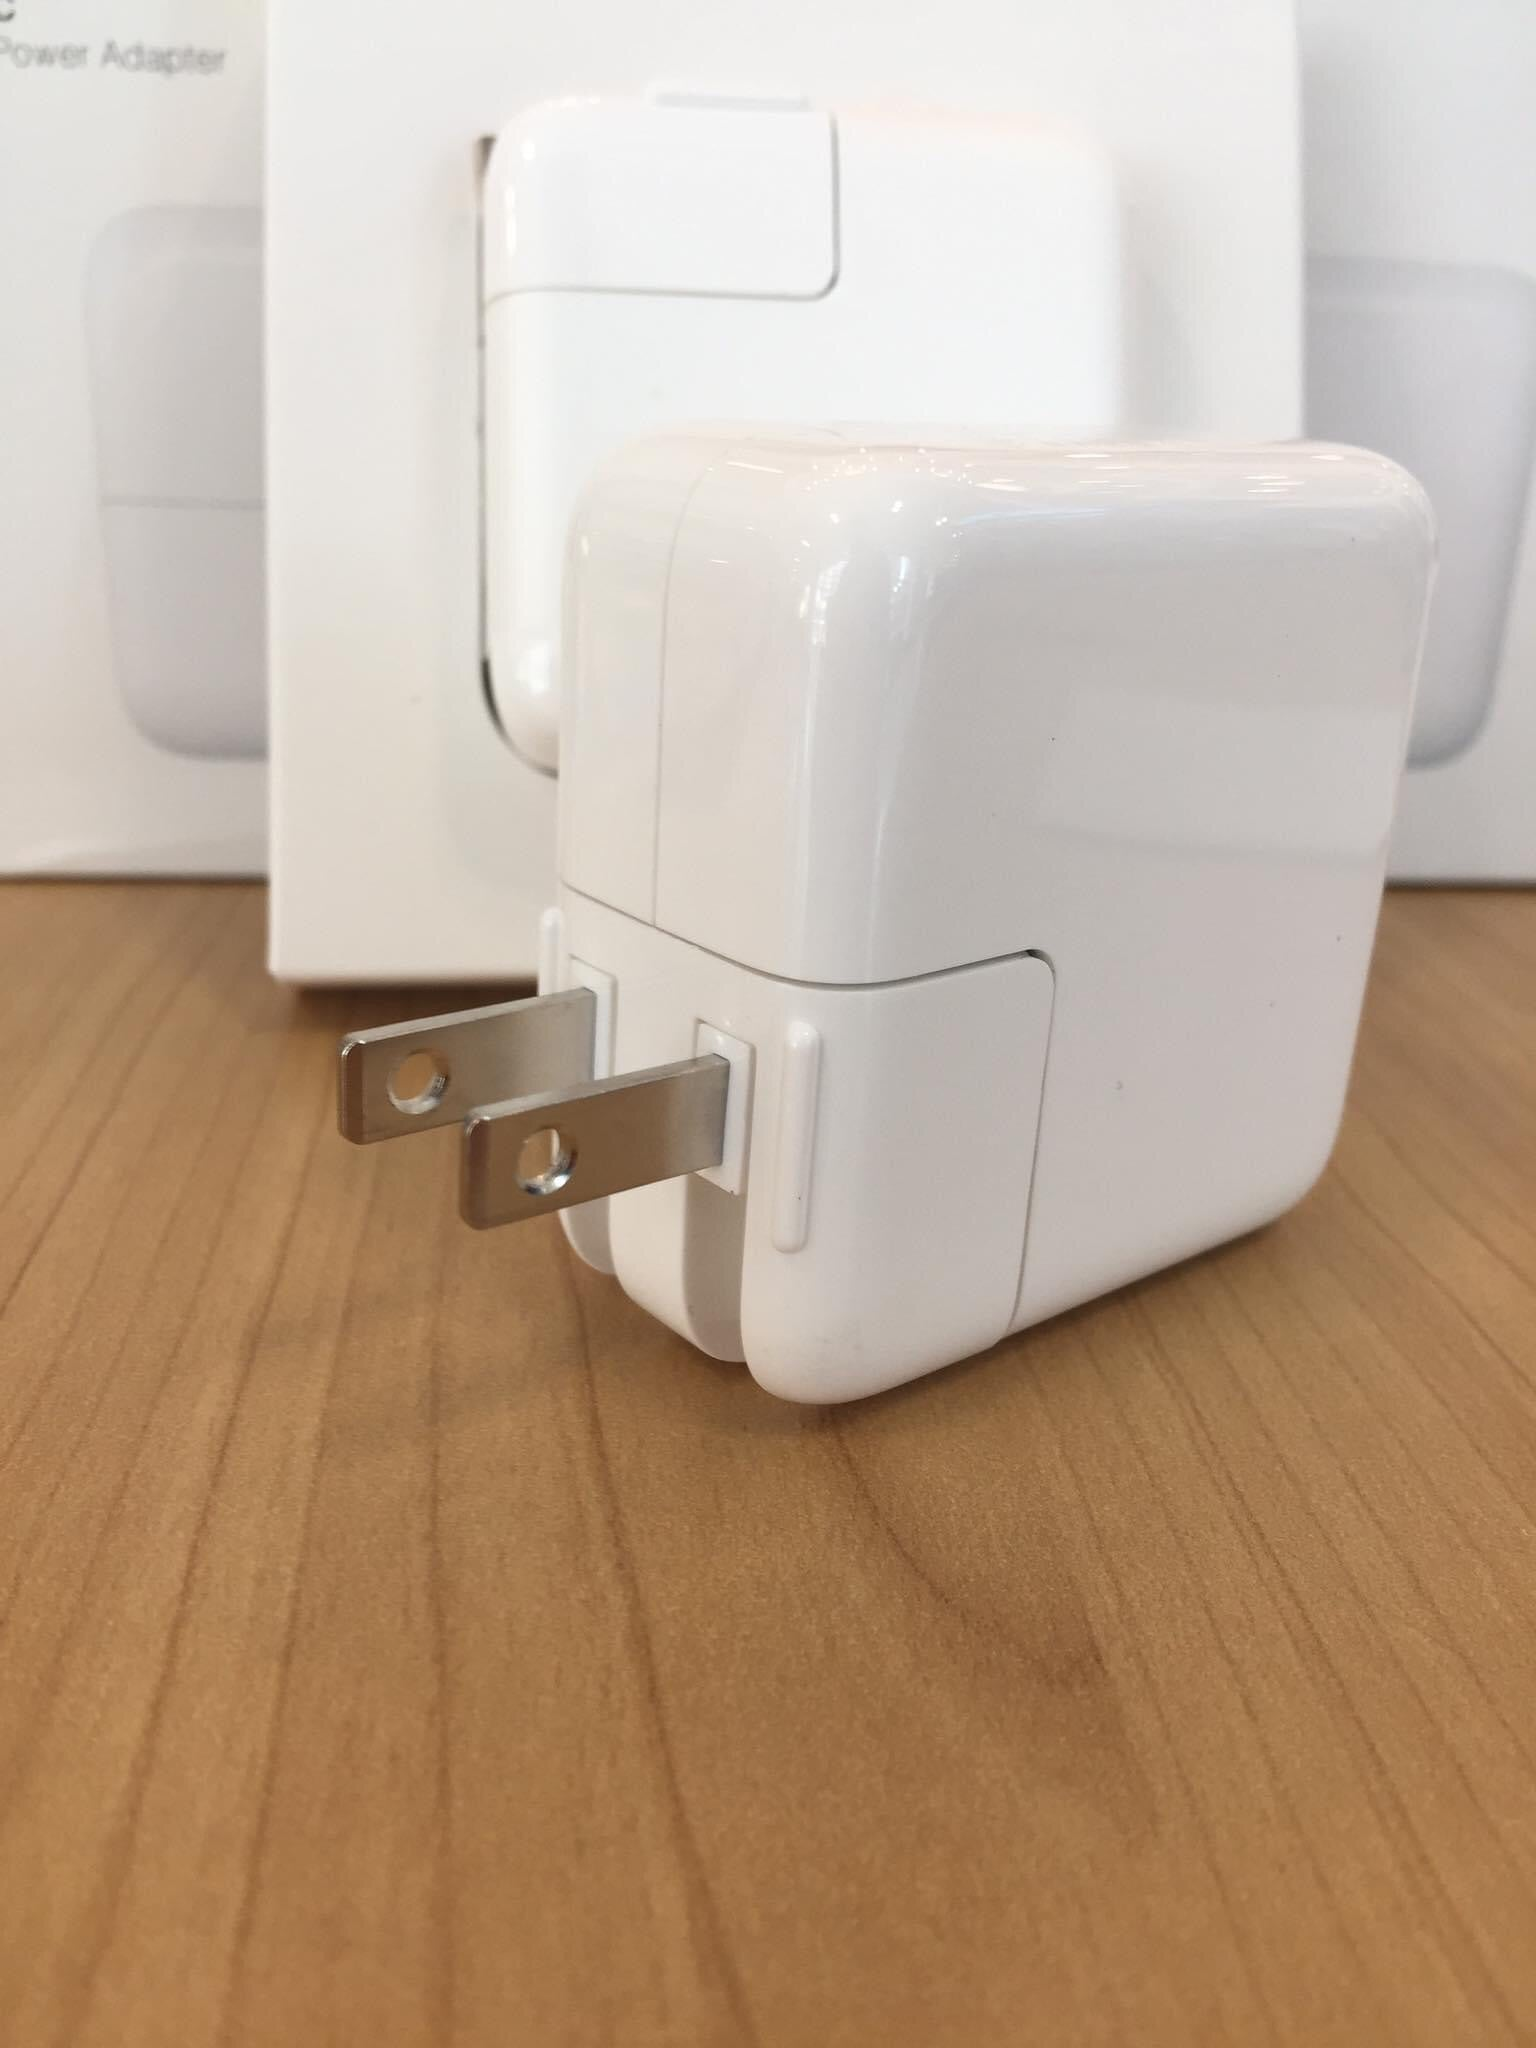 i1108 Apple Original 18W USB-C Power Adaptor